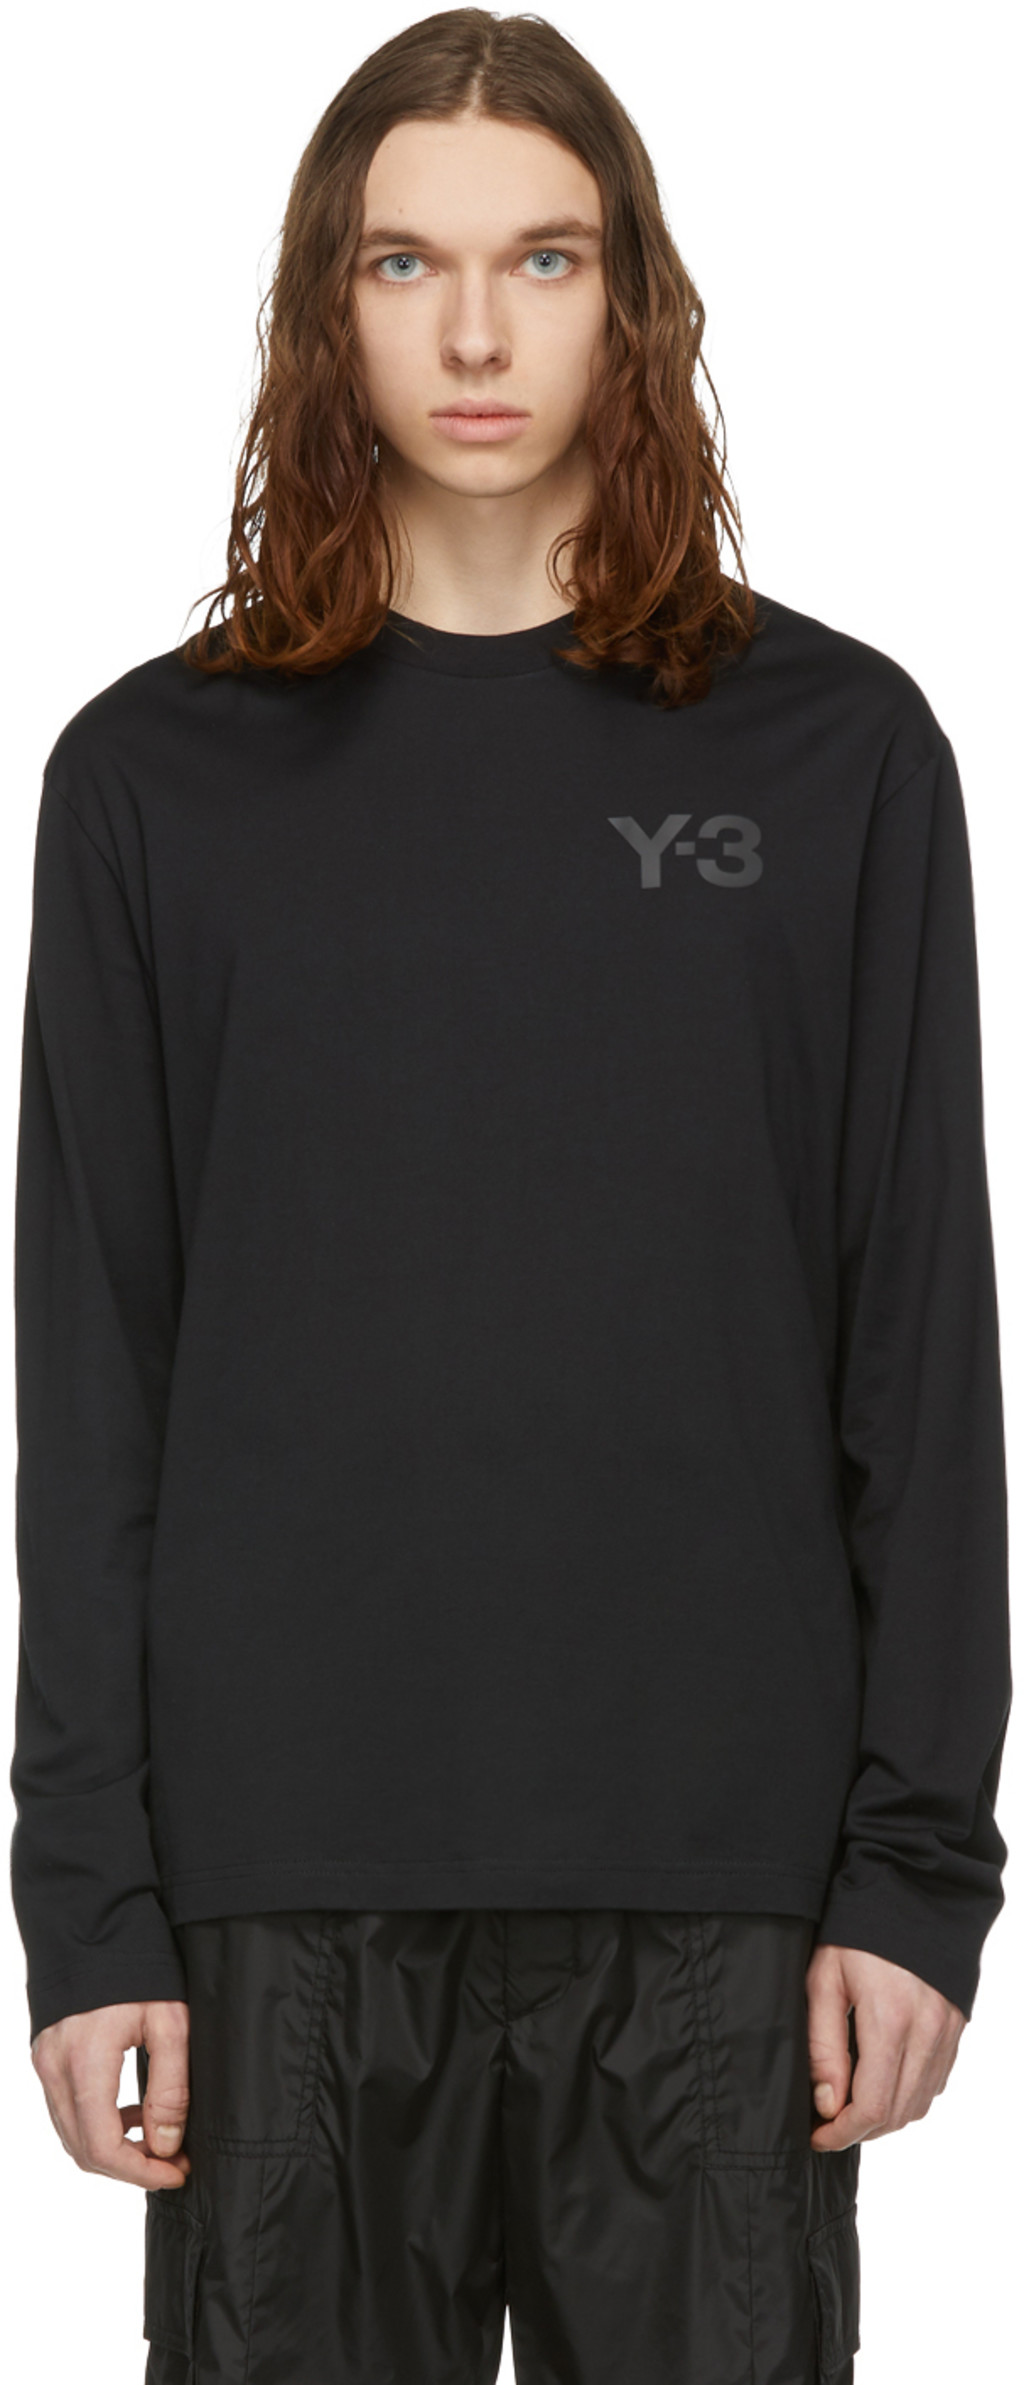 782790198 Y-3 for Men SS19 Collection